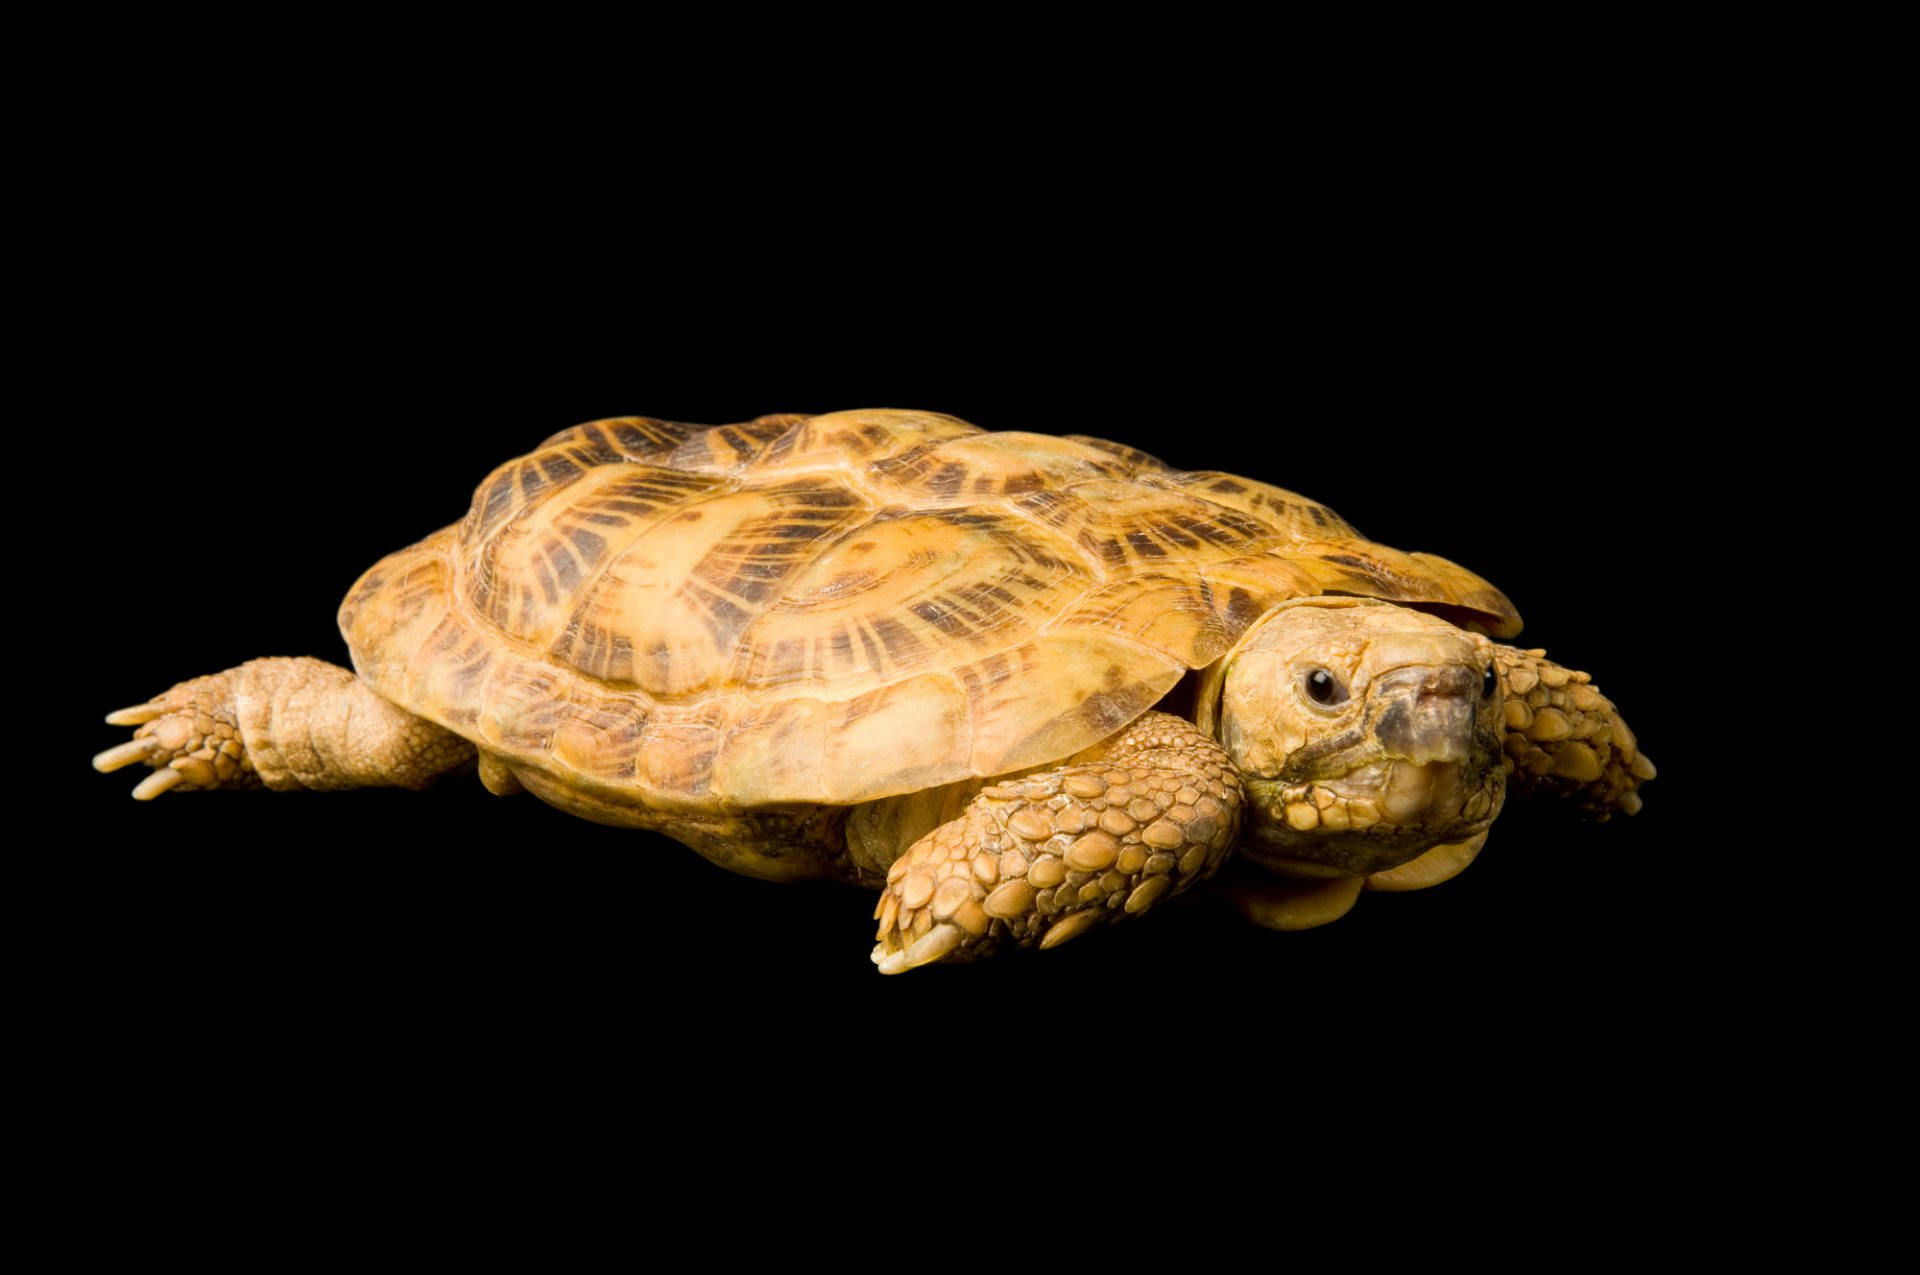 Photo: A pancake tortoise (Malacochersus tornieri) at the Cheyenne Mountain Zoo.